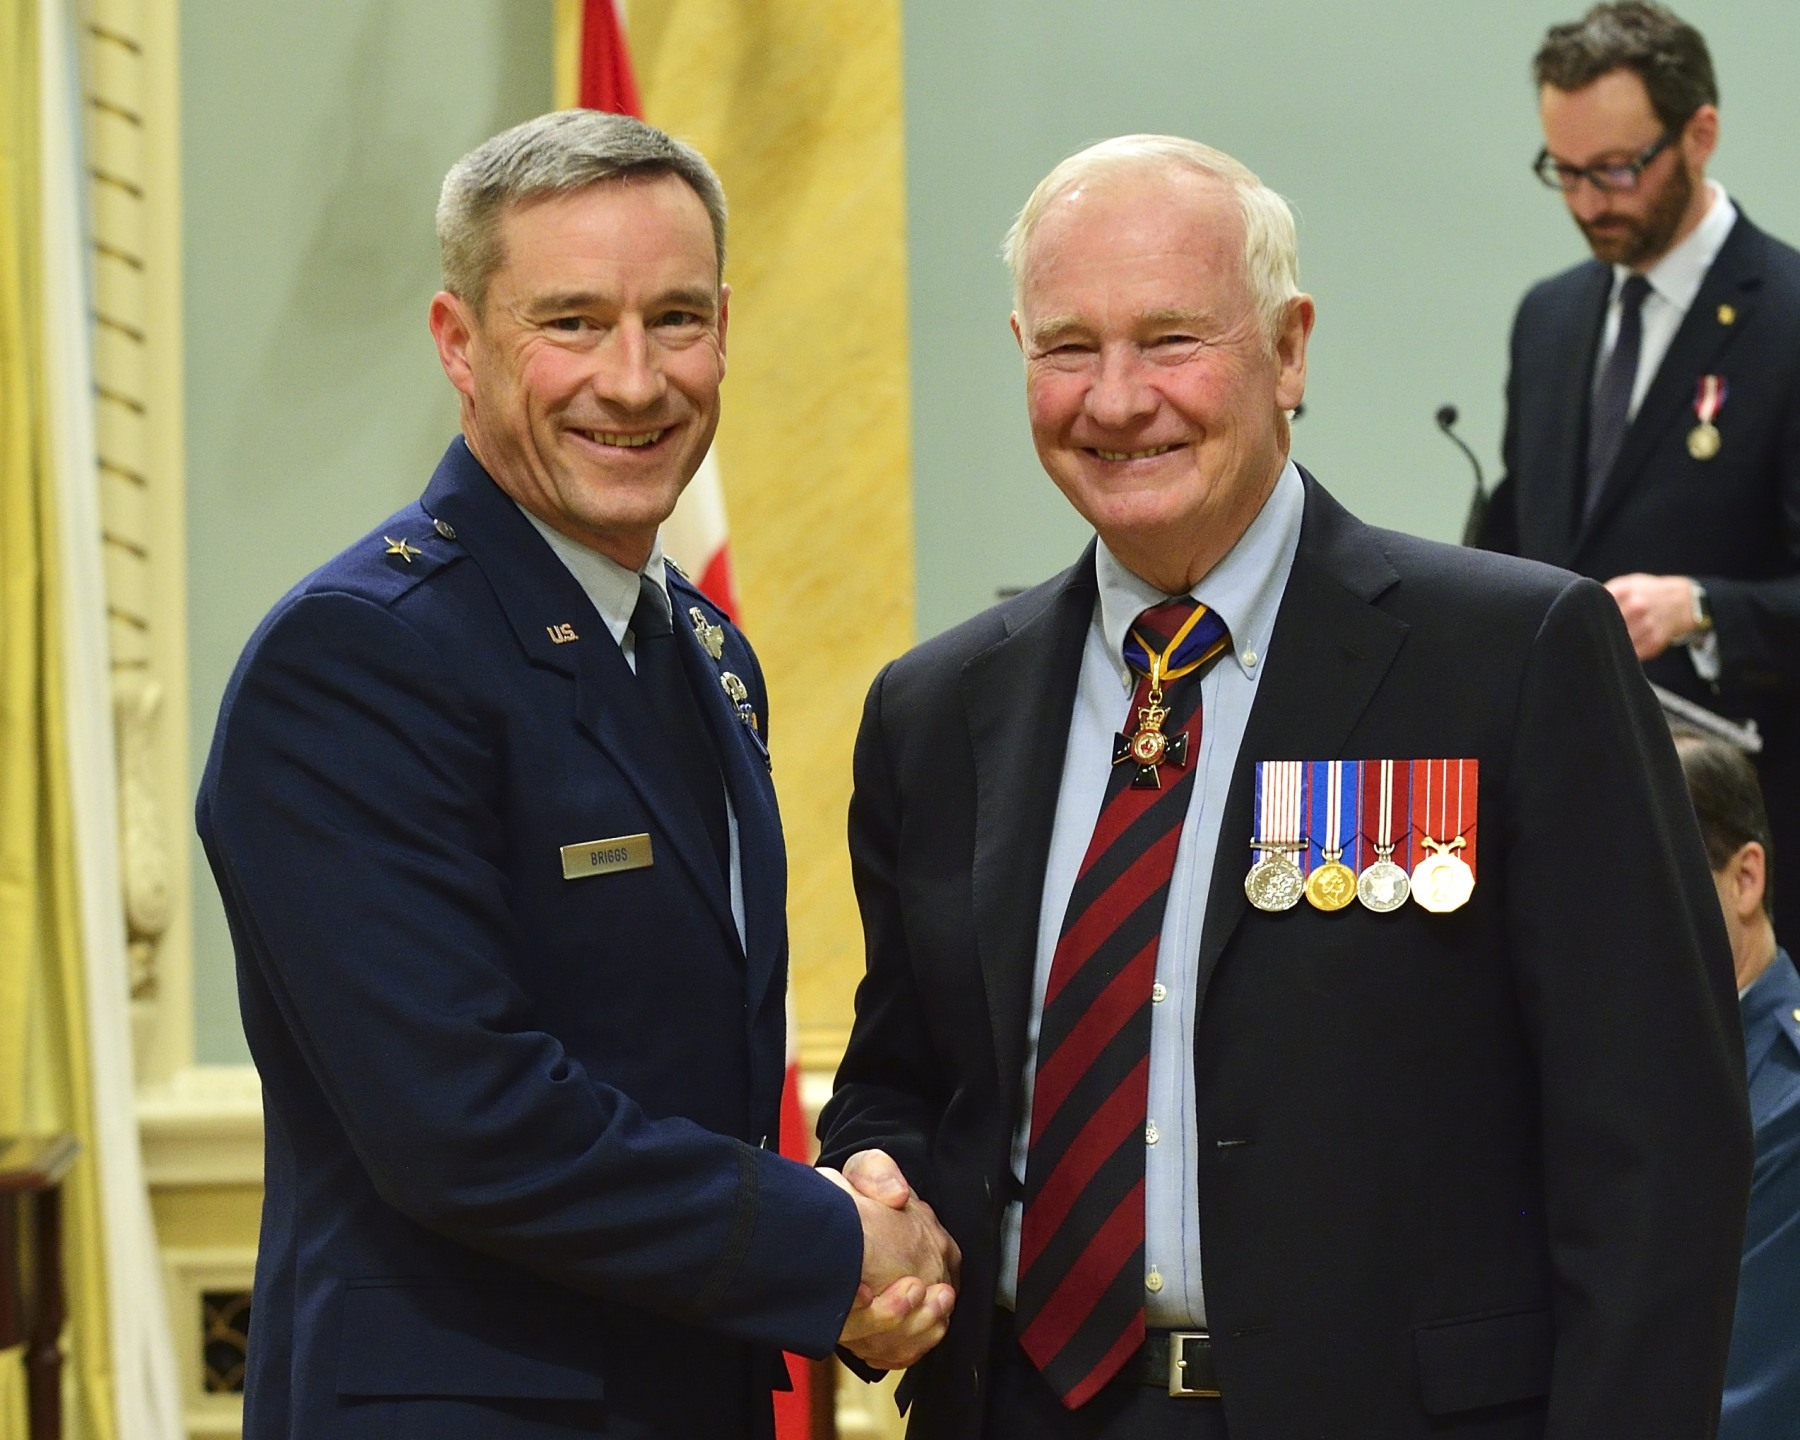 "Brigadier-General Jack L. Briggs II, M.S.M. of the United States Air Force (Spokane, Washington, U.S.A.) received one of the 32 Meritorious Service Medals. Between July 2011 and October 2013, as deputy combined/joint forces air component commander at 1 Canadian Air Division/Canadian NORAD Region Headquarters, Brigadier-General Briggs was instrumental in the successful delivery of the ""NORAD defence of North America"" mission, and of the Canadian Armed Forces' domestic operations and international combat and support missions. Brigadier-General Briggs's performance has strengthened our relationship with our United States allies and has contributed to the ongoing pursuit of our North American security goals."